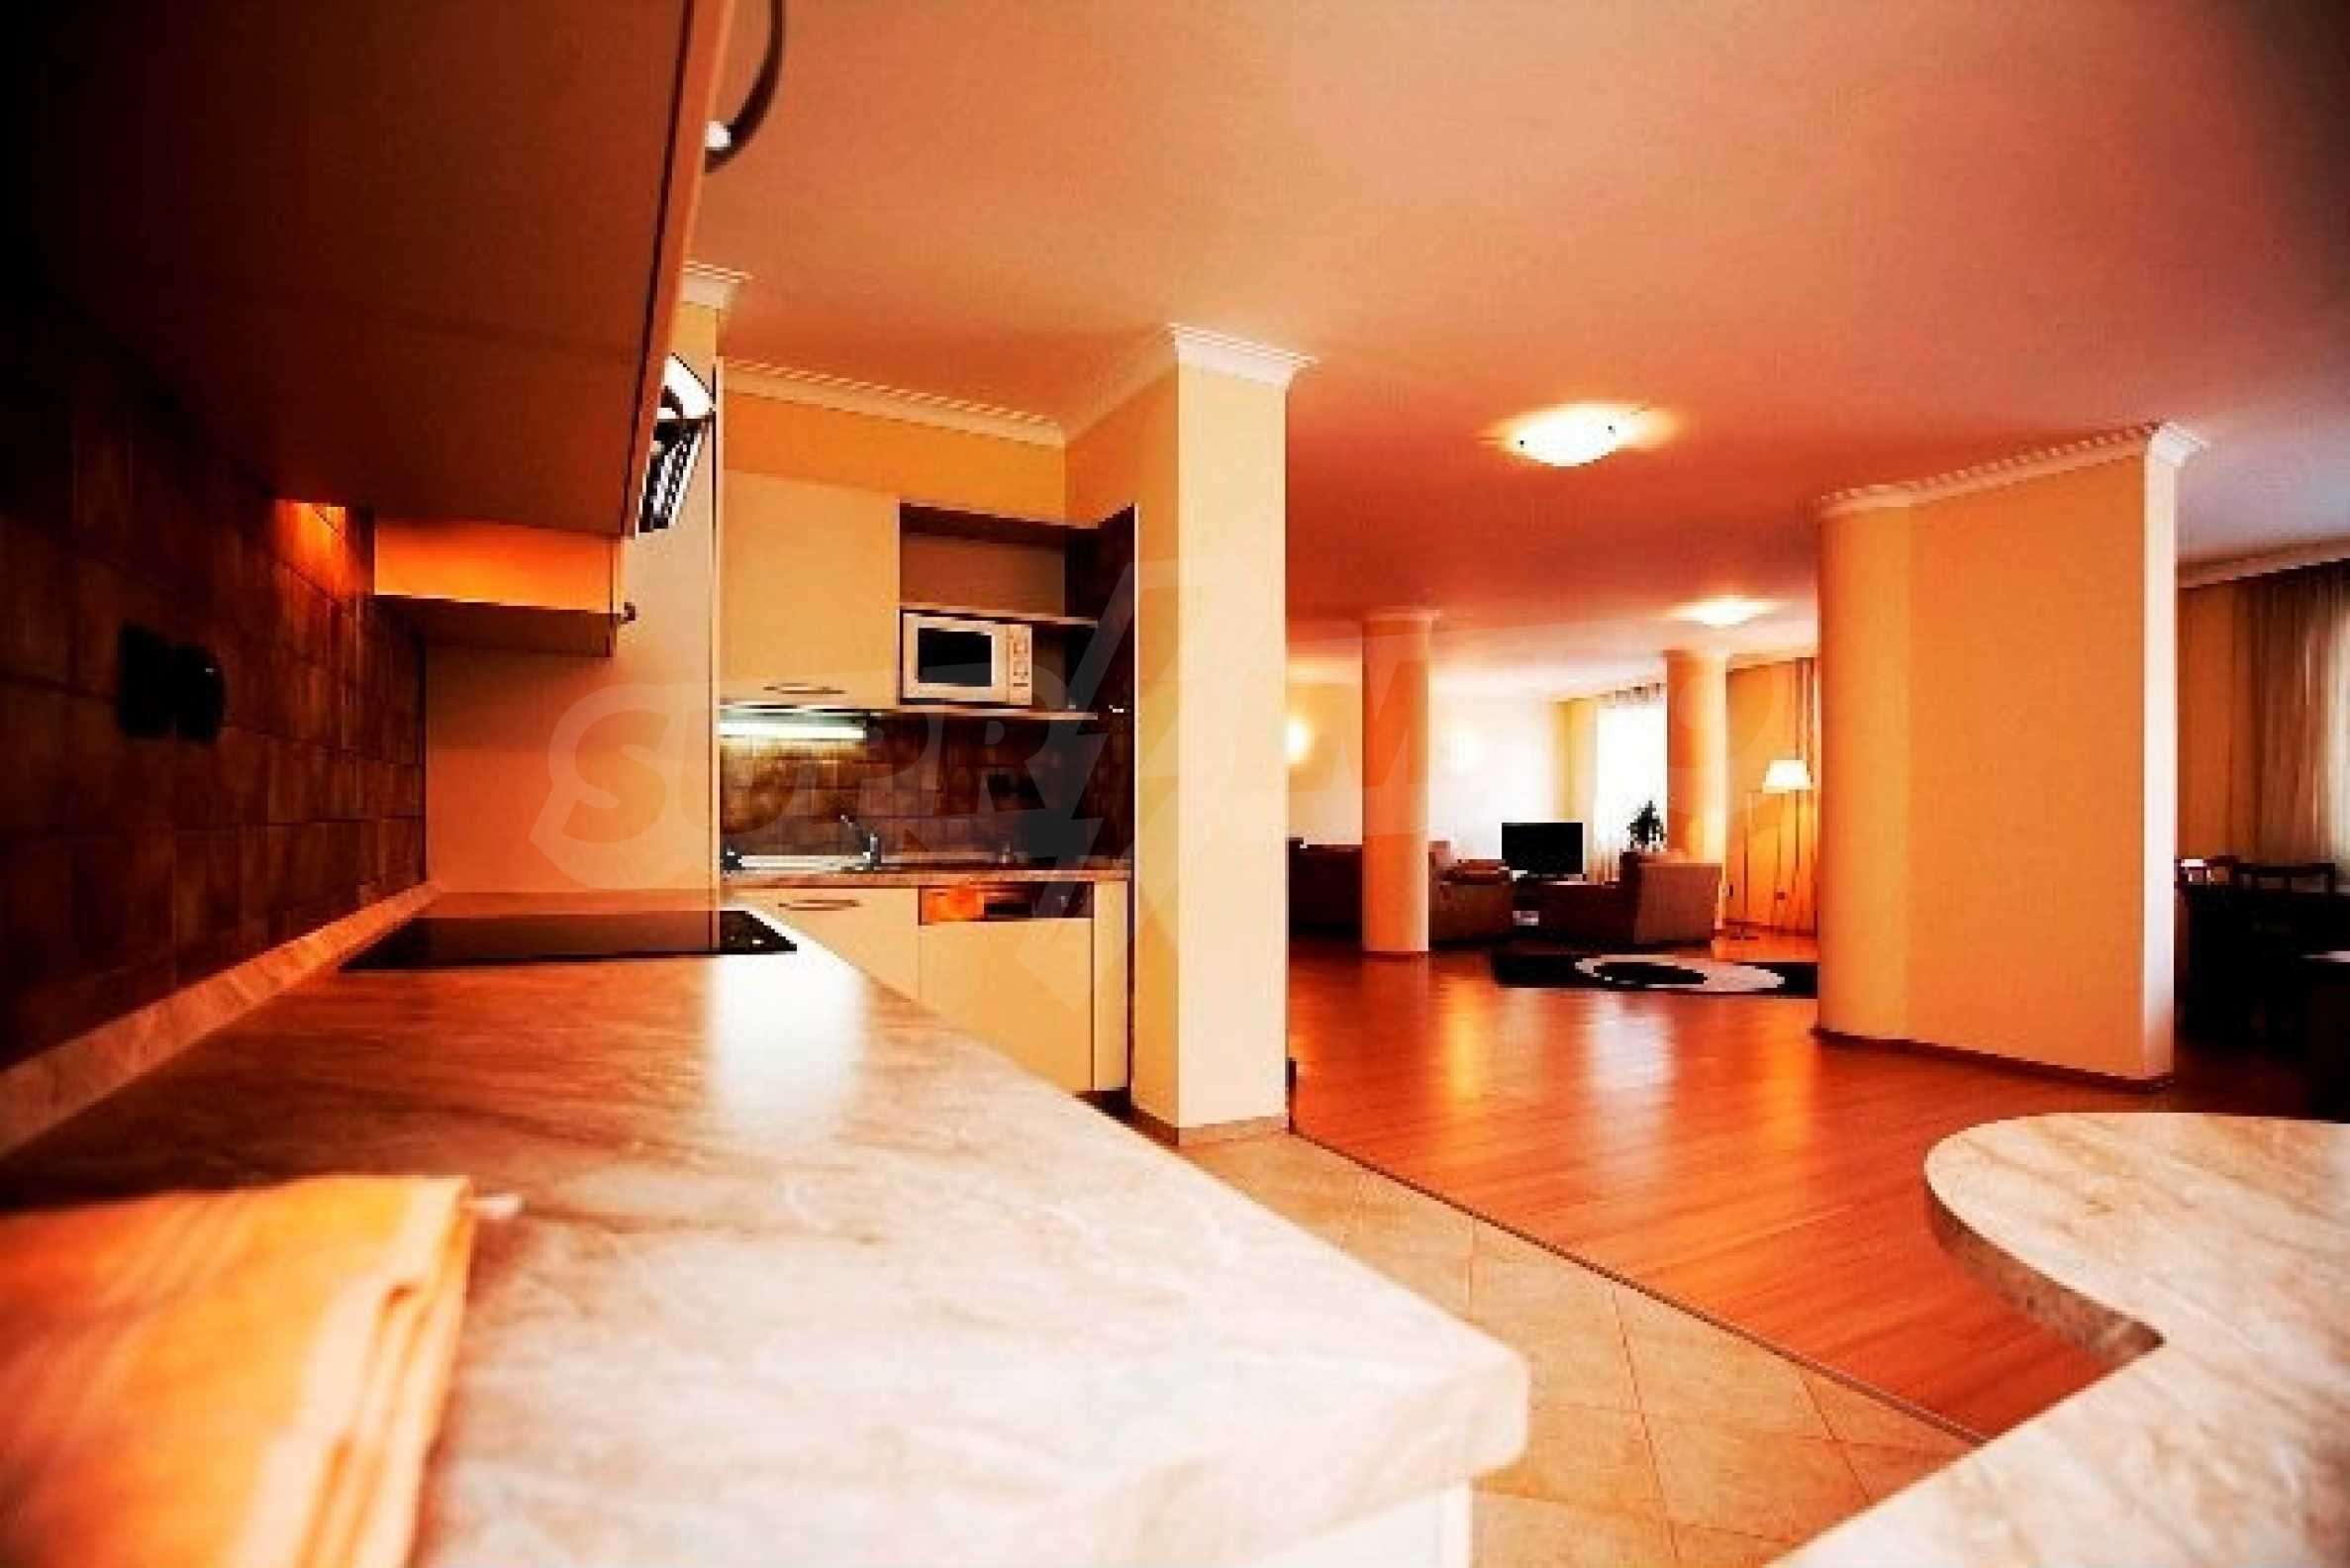 Apartment in the center of Sofia